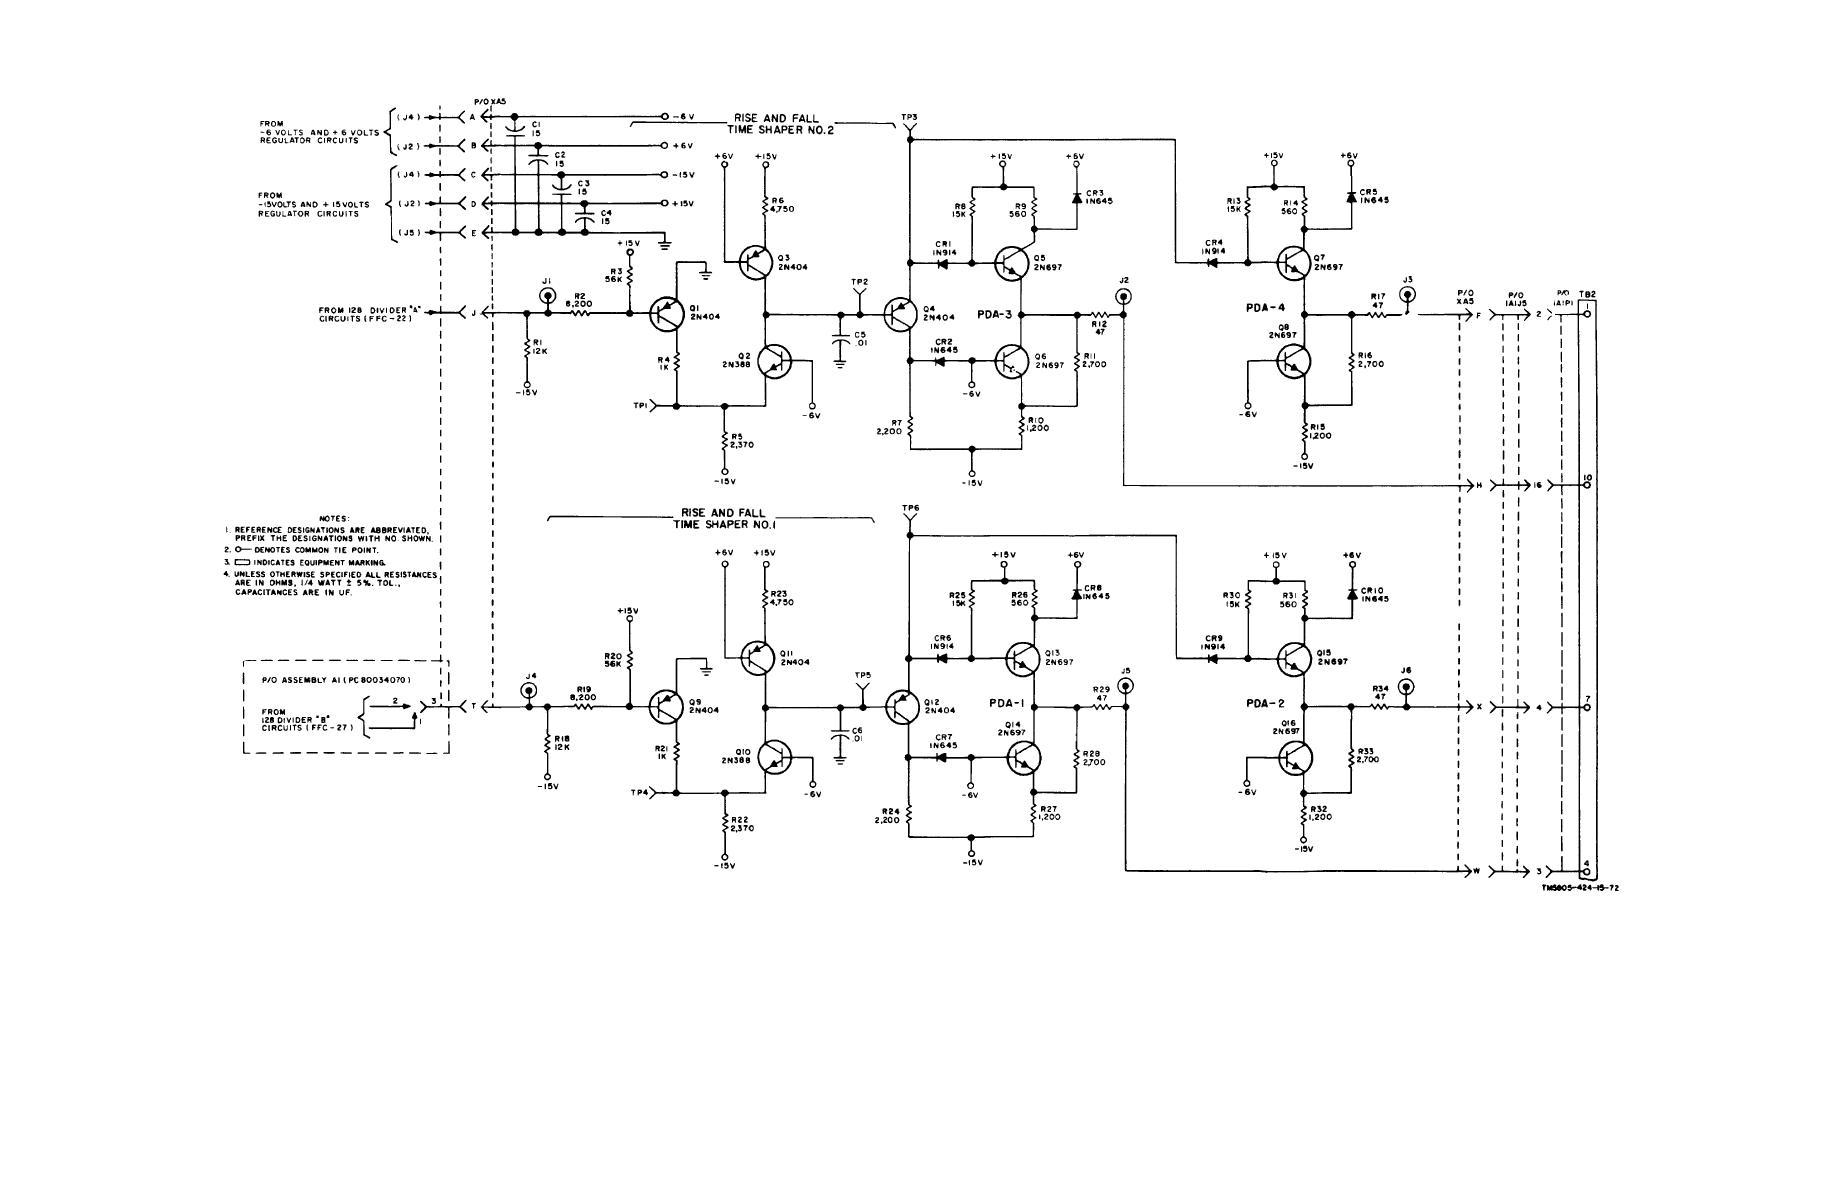 Carrier Infinity Wiring Diagram Tamahuproject Org